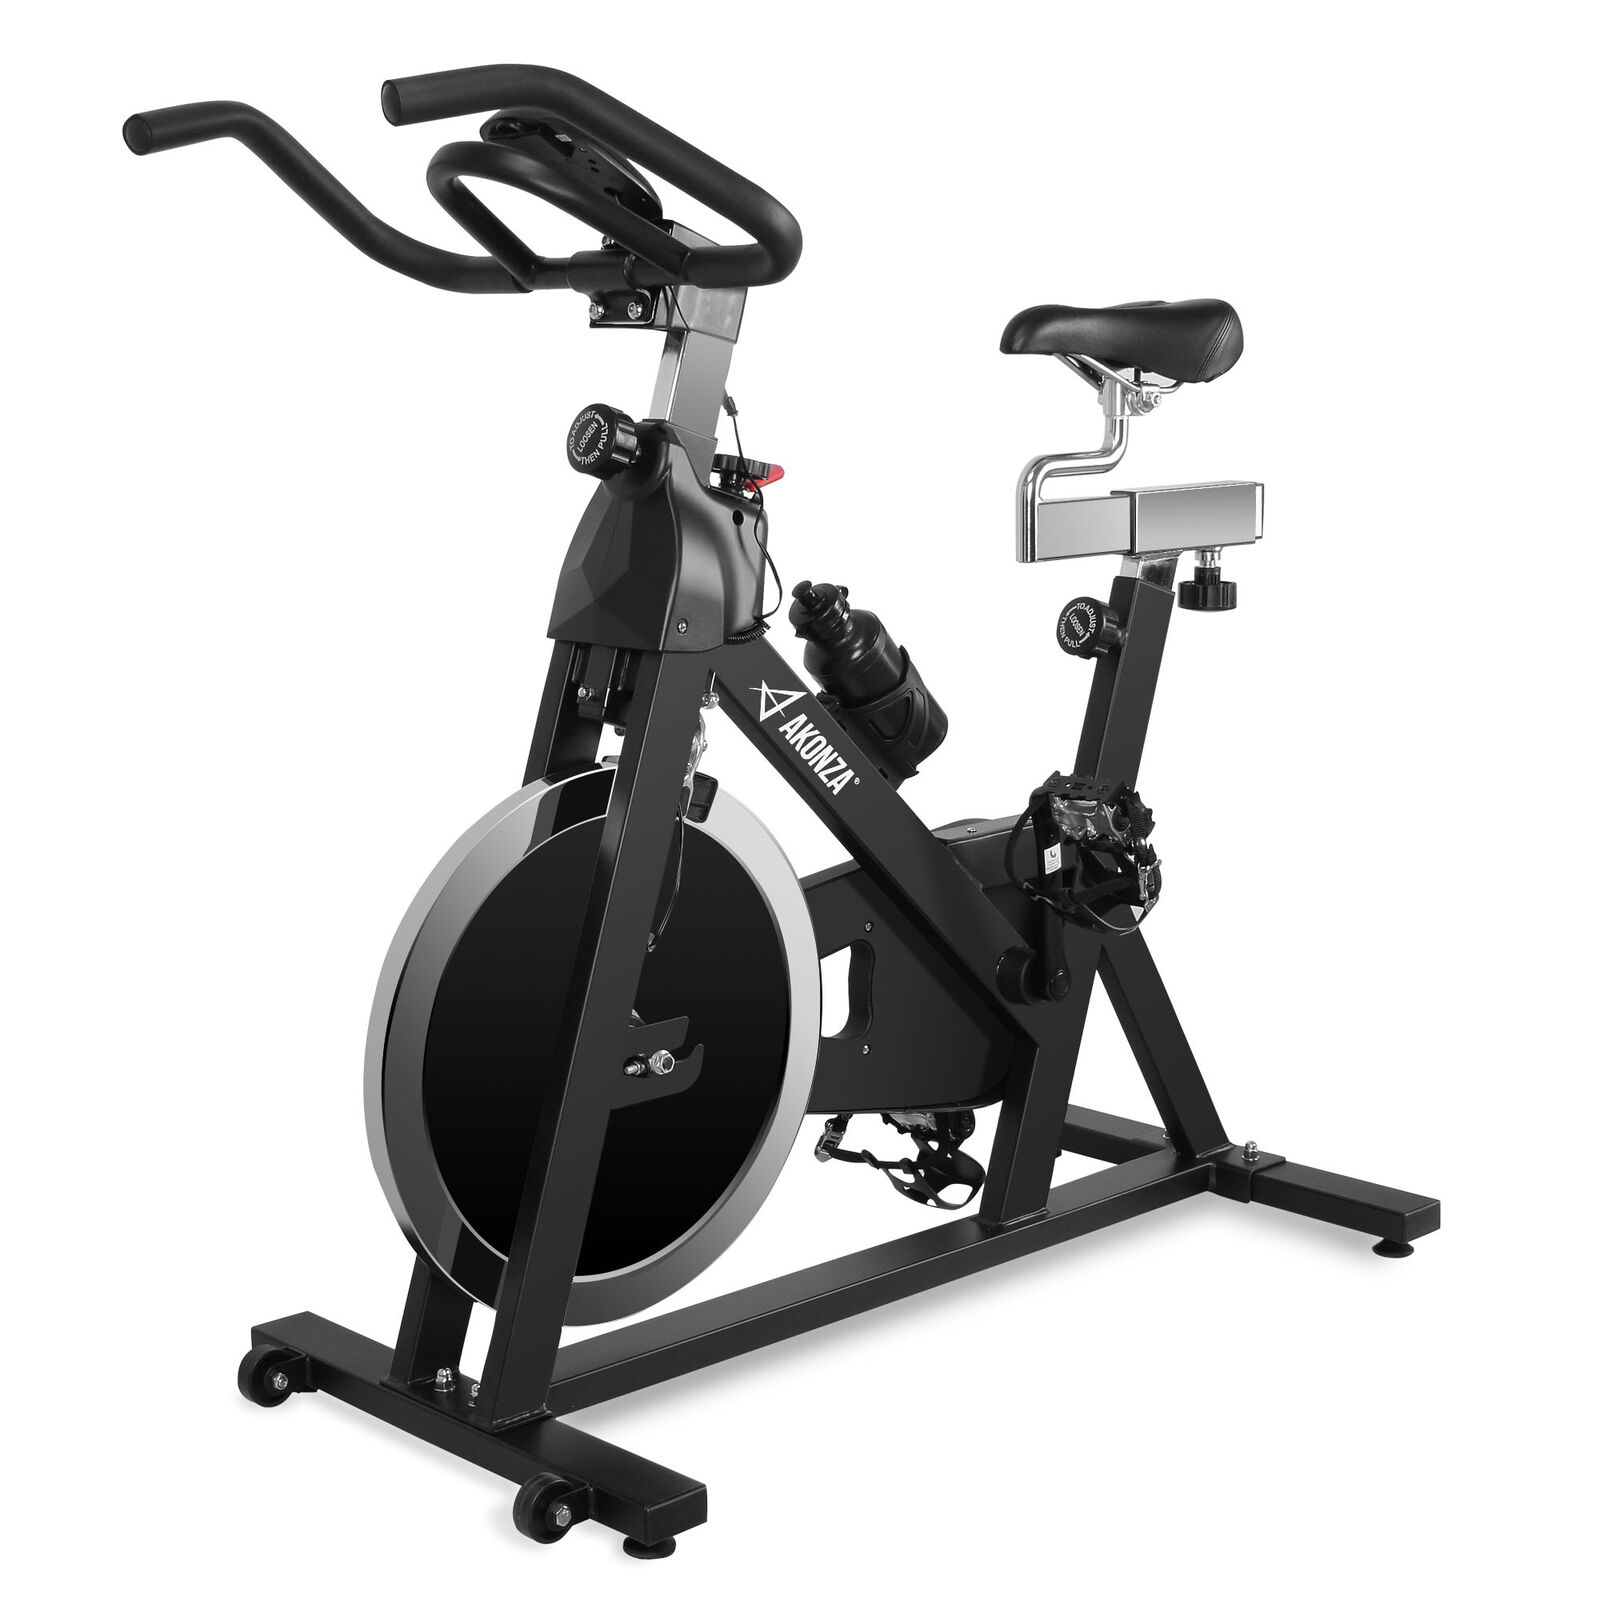 Health and Fitness Indoor Cycling Stationary Exercise Bicycle w/ 40 lb Flywheel 1